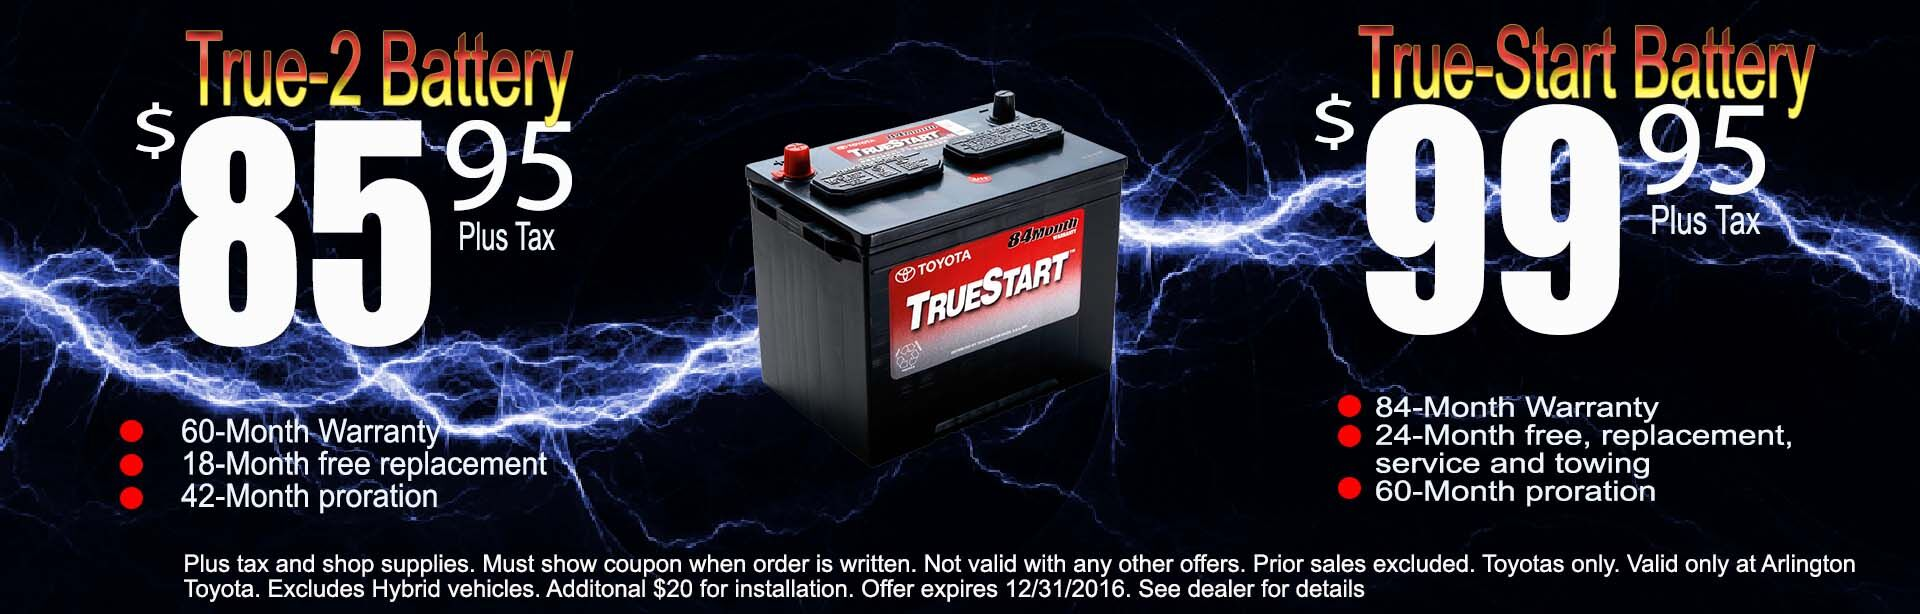 TRU START BATTERY SALE